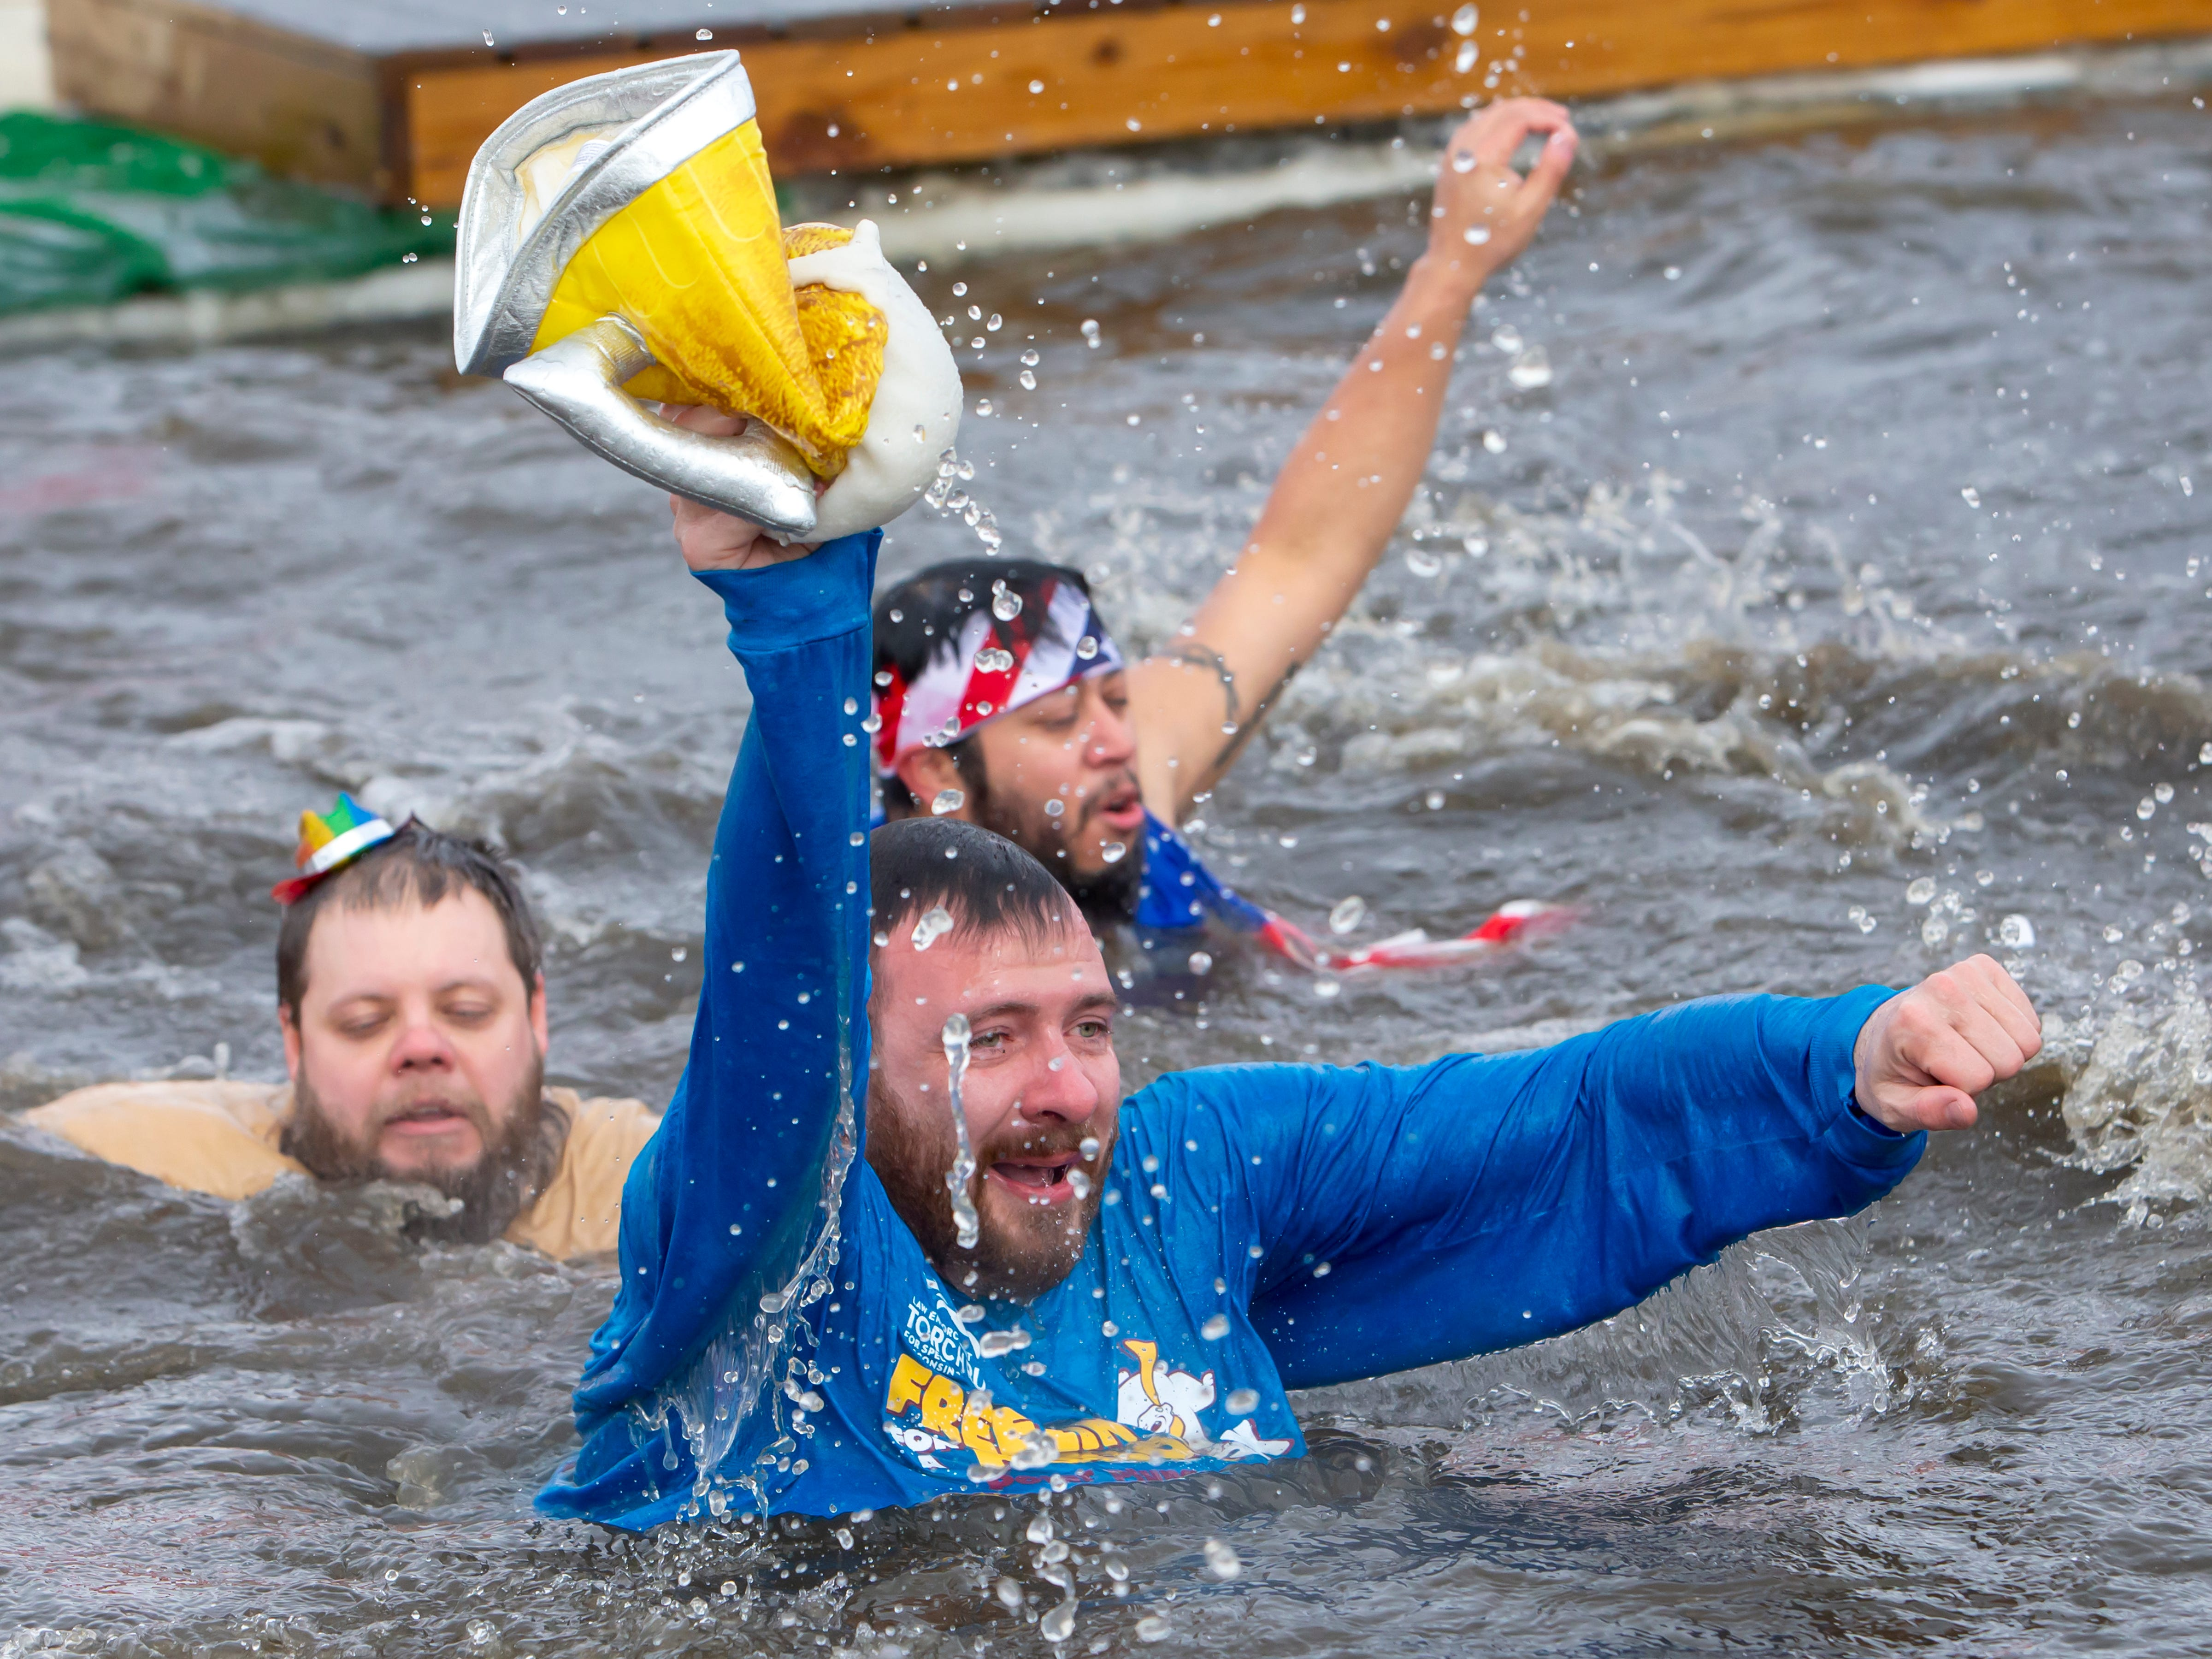 People react while in the freezing water during the Special Olympics Wisconsin Polar Plunge in Oshkosh, Wis., on Saturday, February 16, 2019, at Miller's Bay in Menominee Park.